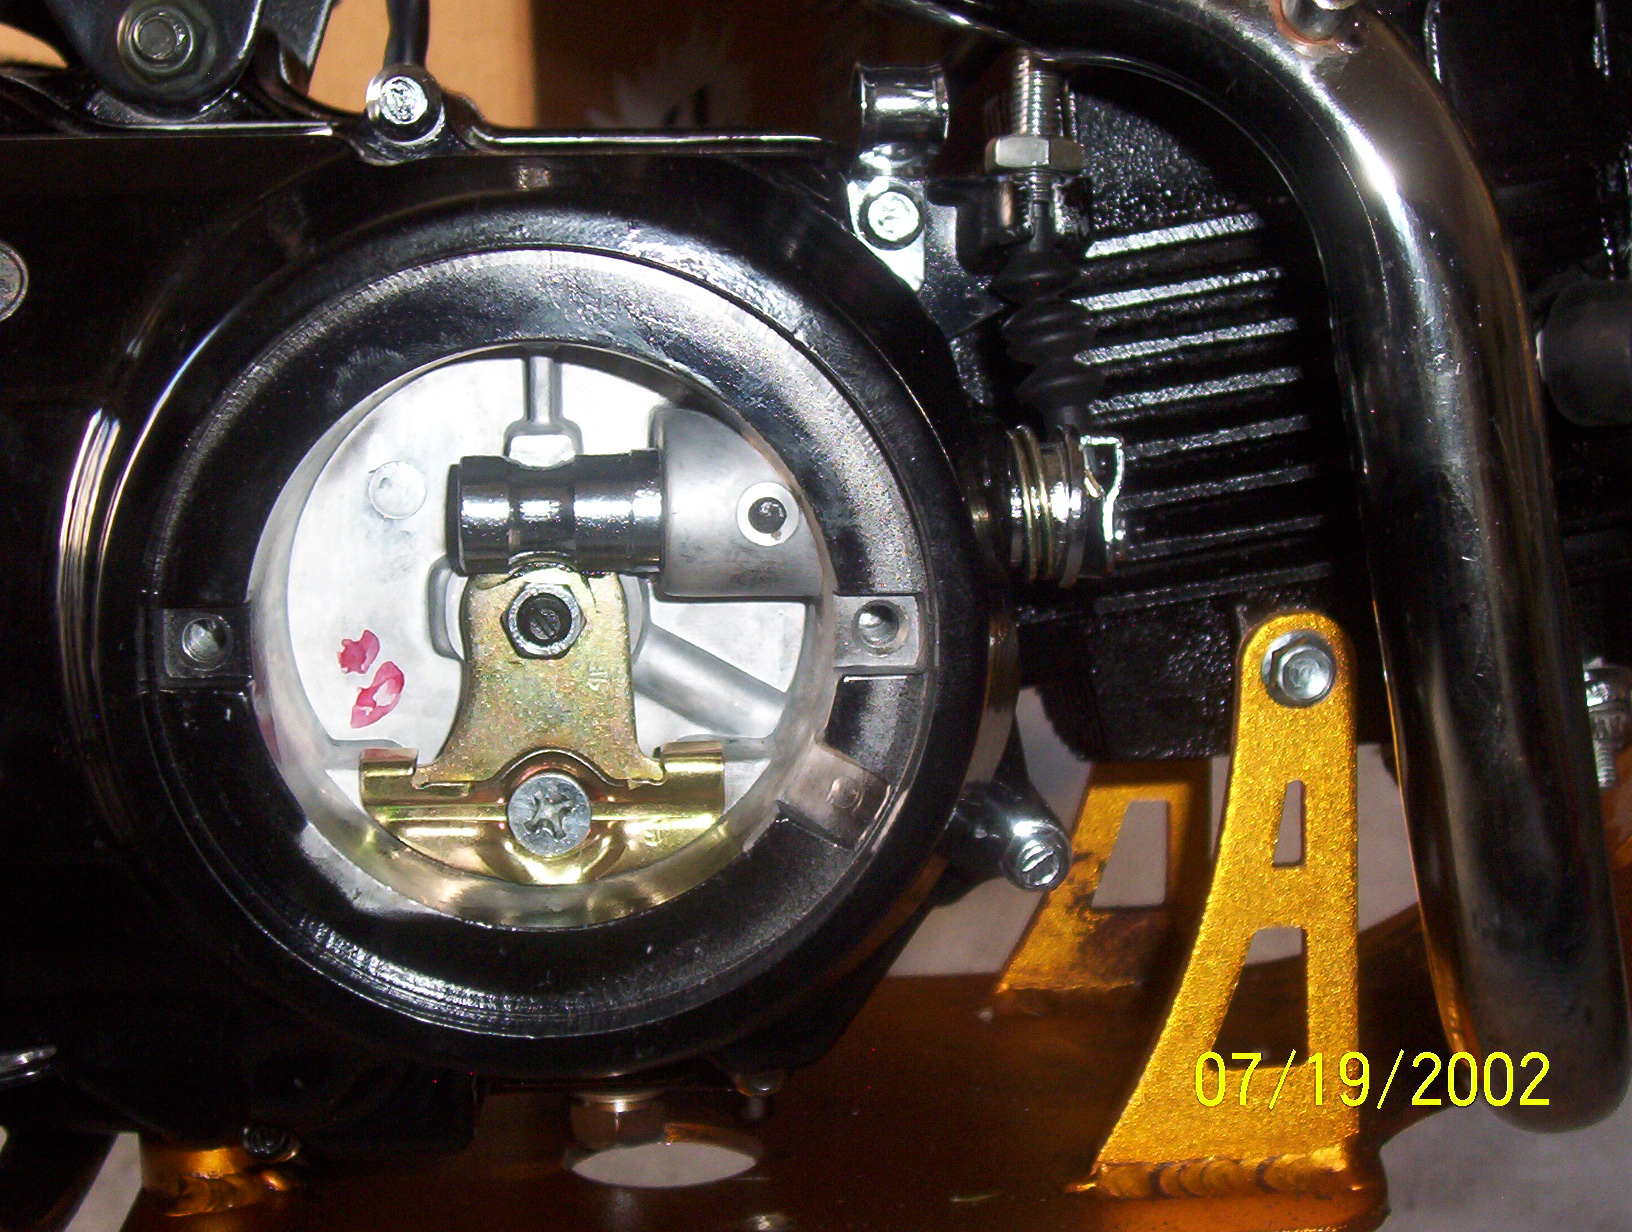 [SCHEMATICS_44OR]  Brand new Lifan 125cc clutch prob | PlanetMinis Forums | Zongshen 125cc Engine Diagram Clutch |  | PlanetMinis